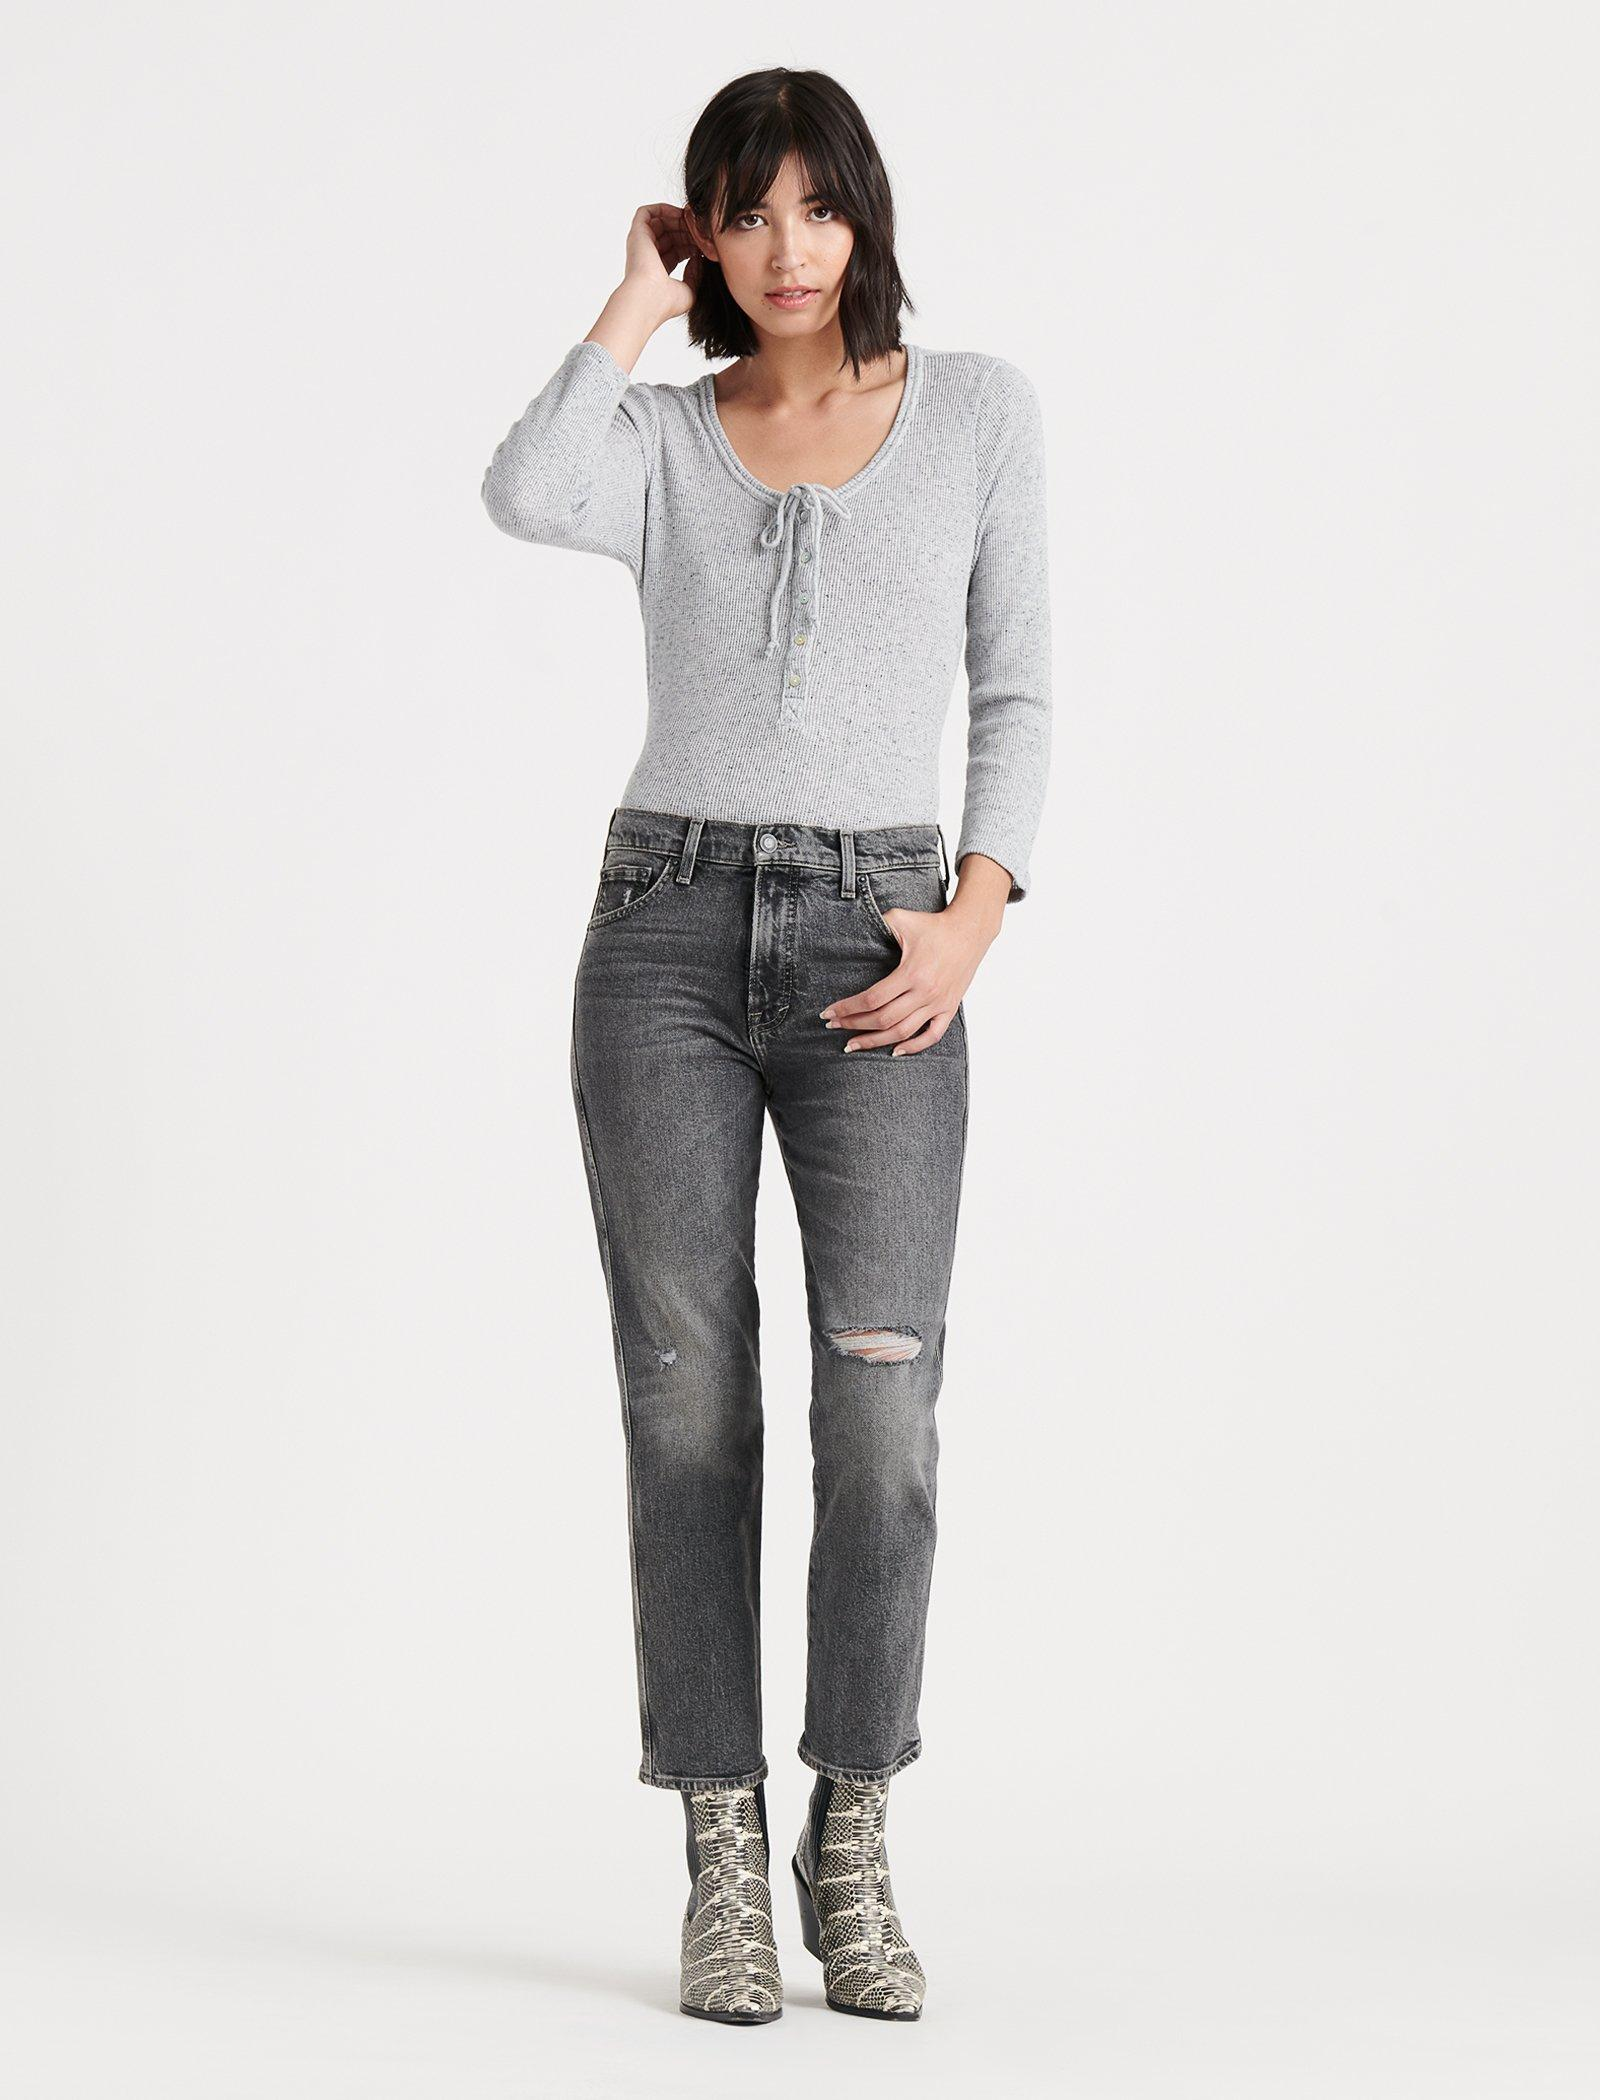 MID RISE AUTHENTIC STRAIGHT CROP JEAN, image 1